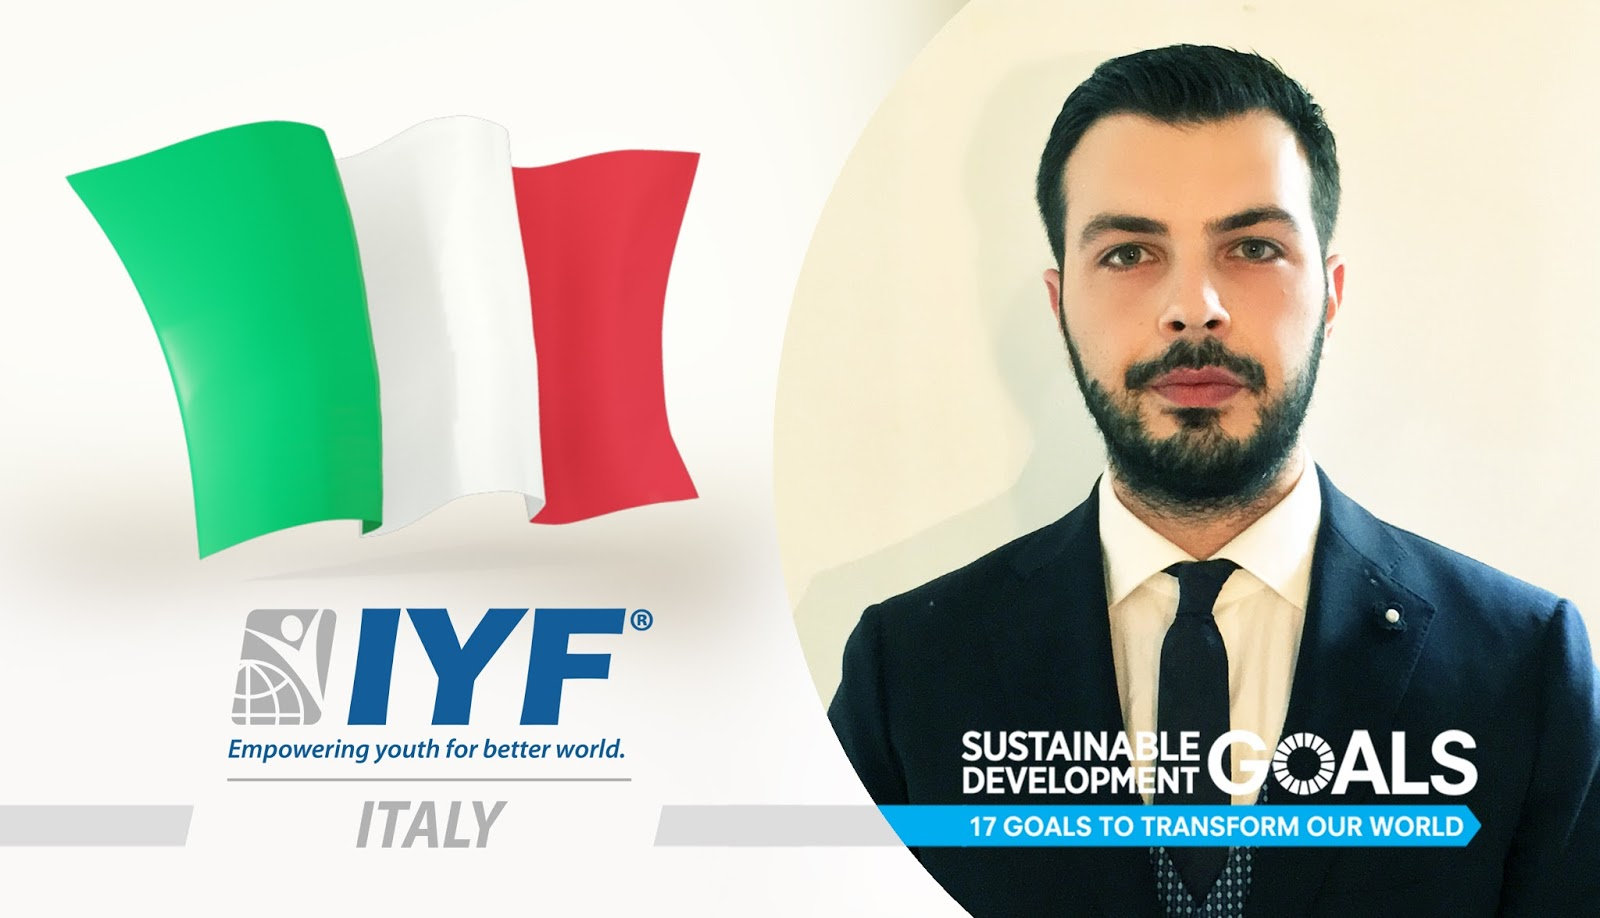 Angelo Ferro, IYF Representative in Italy